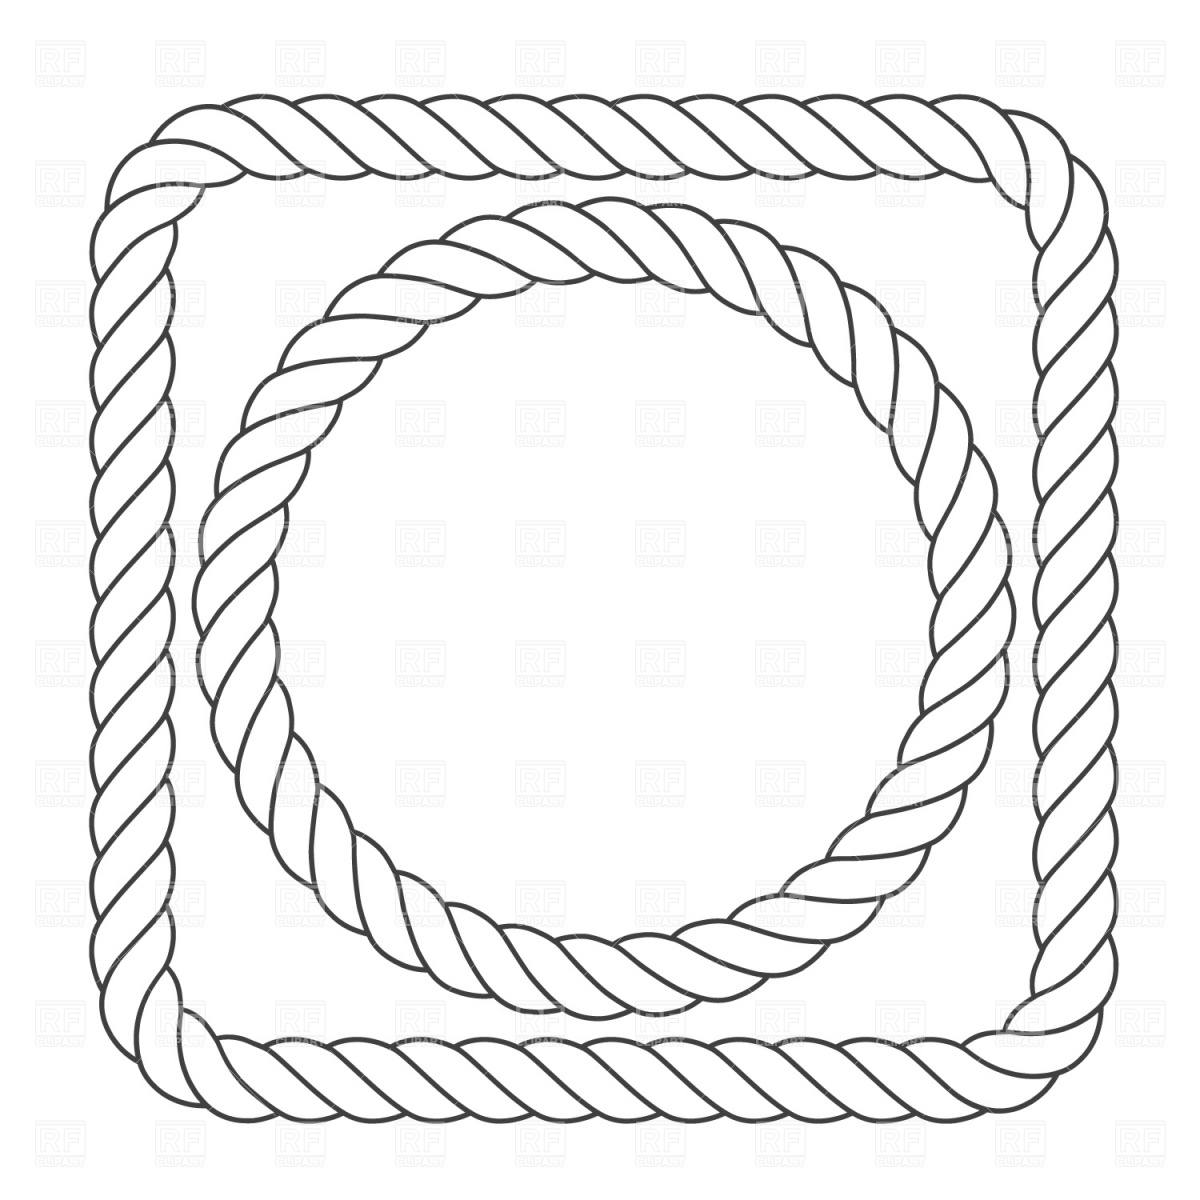 1200x1200 Rope Border Vector Image Vector Artwork Of Borders And Frames